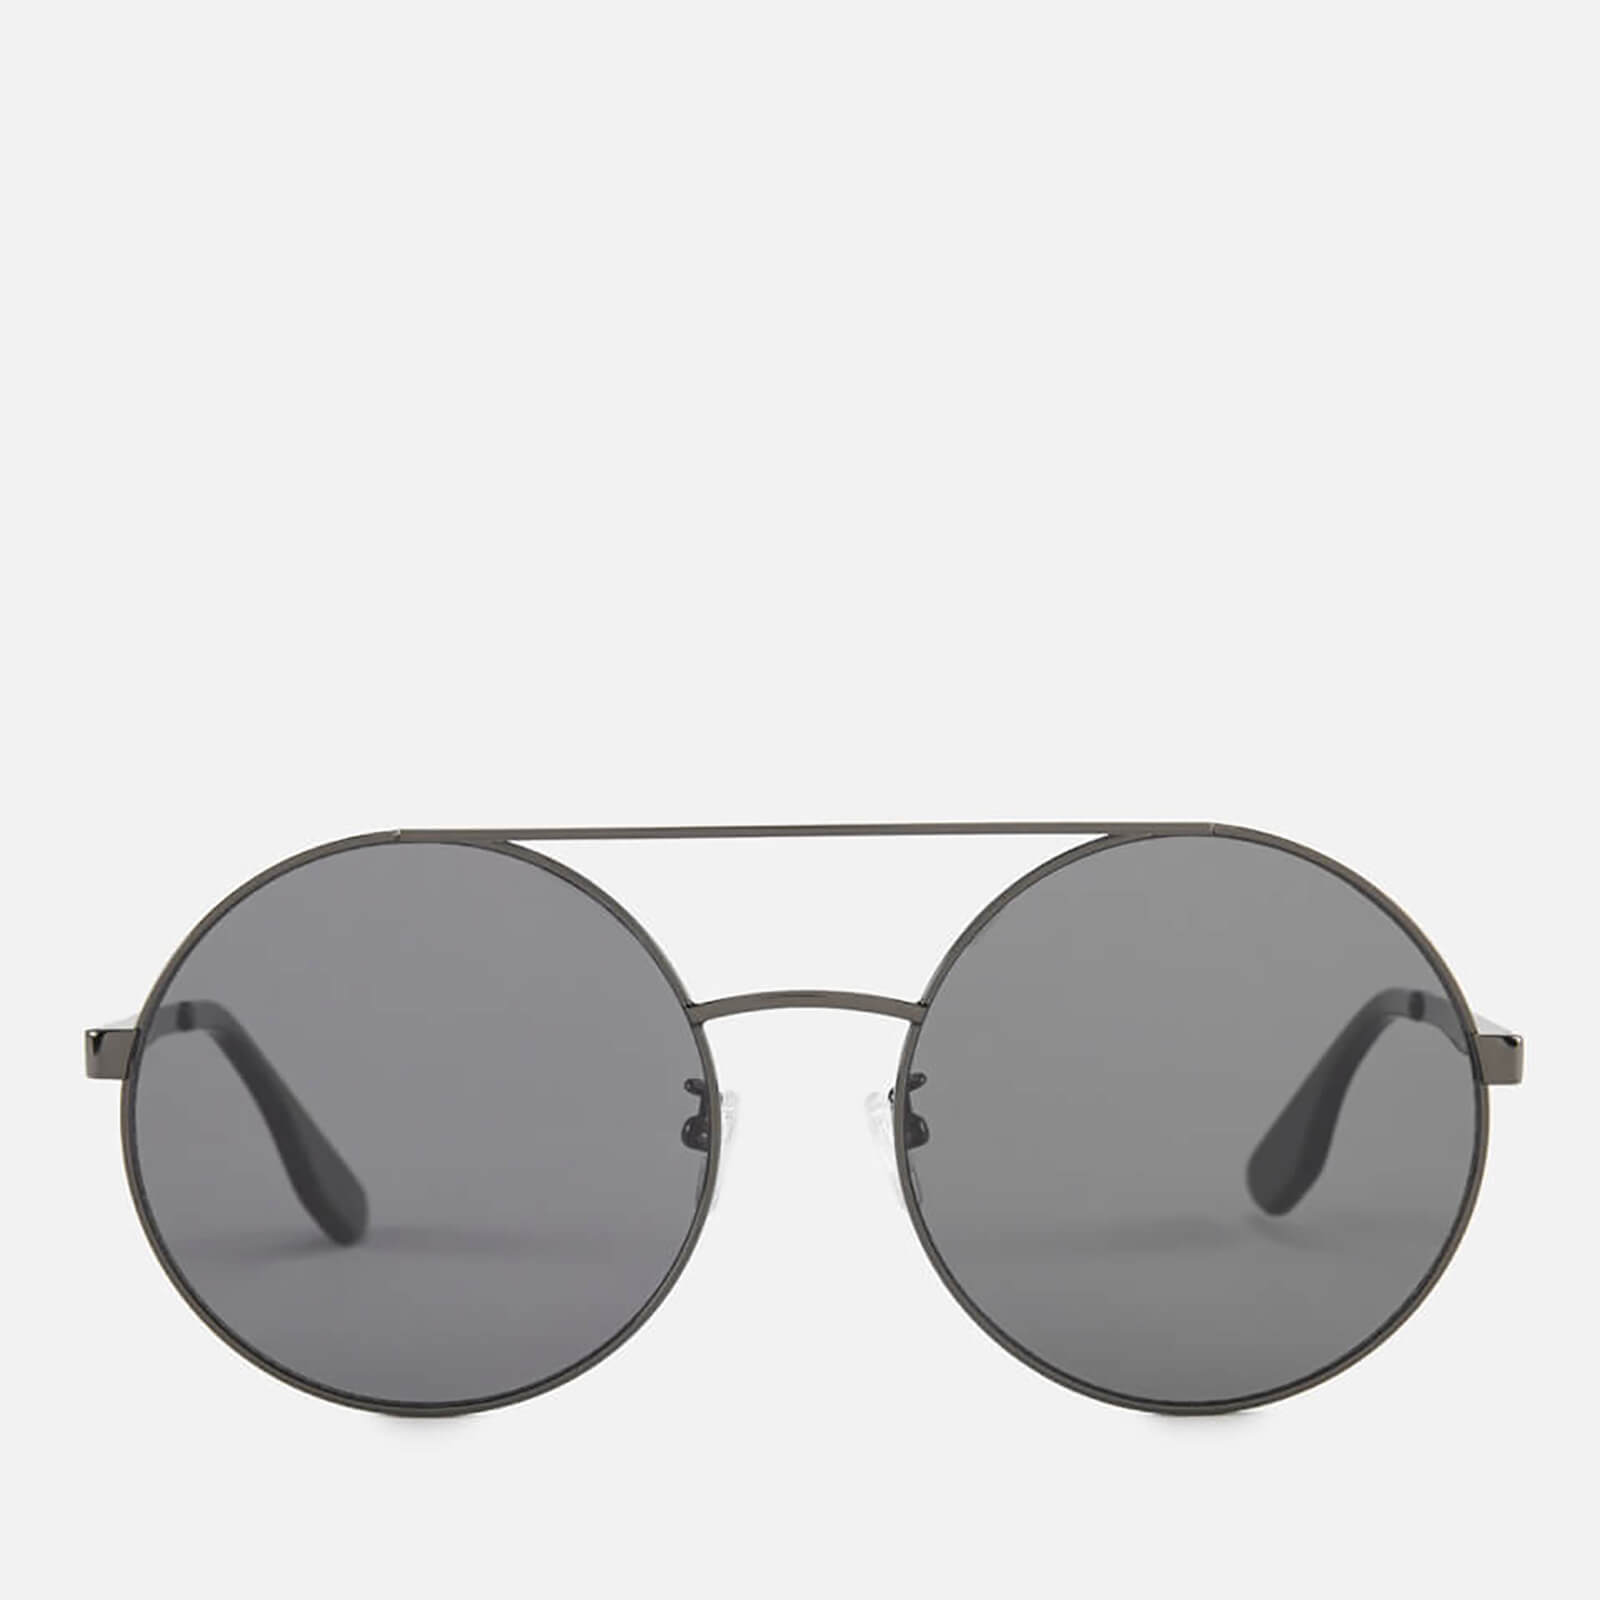 21e1ae2be2 McQ Alexander McQueen Women s Round Metal Frame Sunglasses - Black Black -  Free UK Delivery over £50